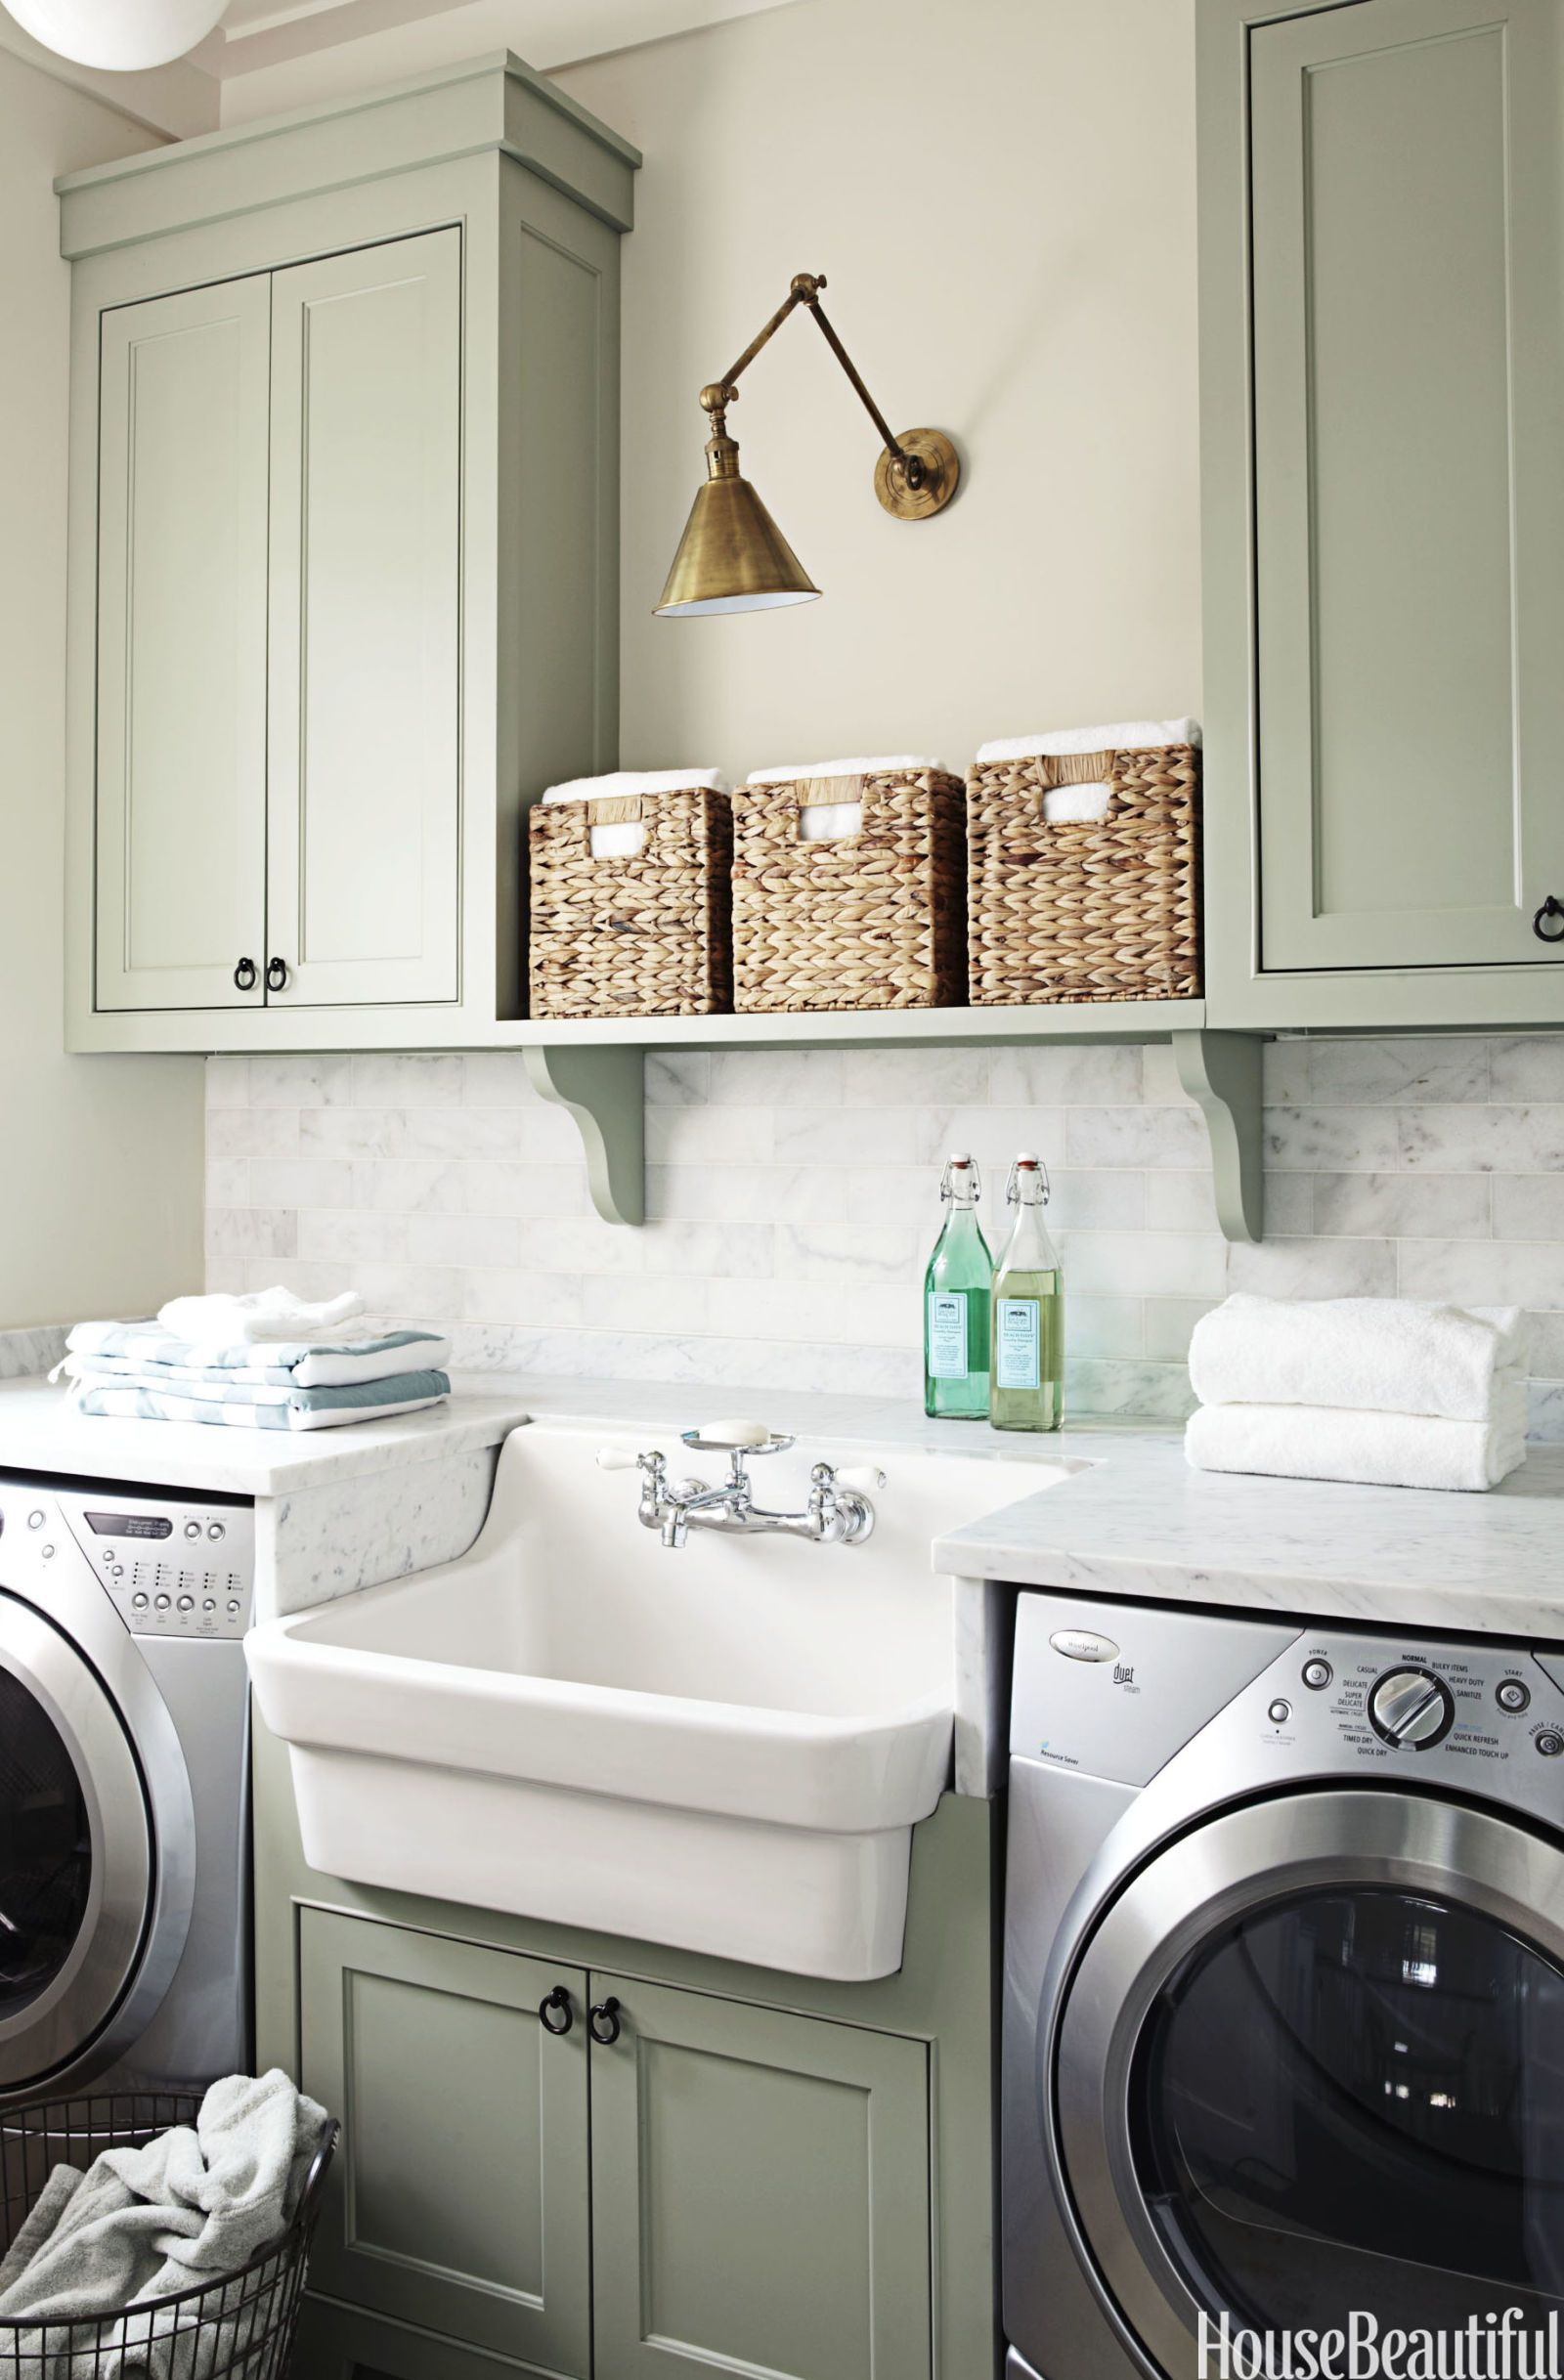 Merveilleux Small Laundry Room Ideas